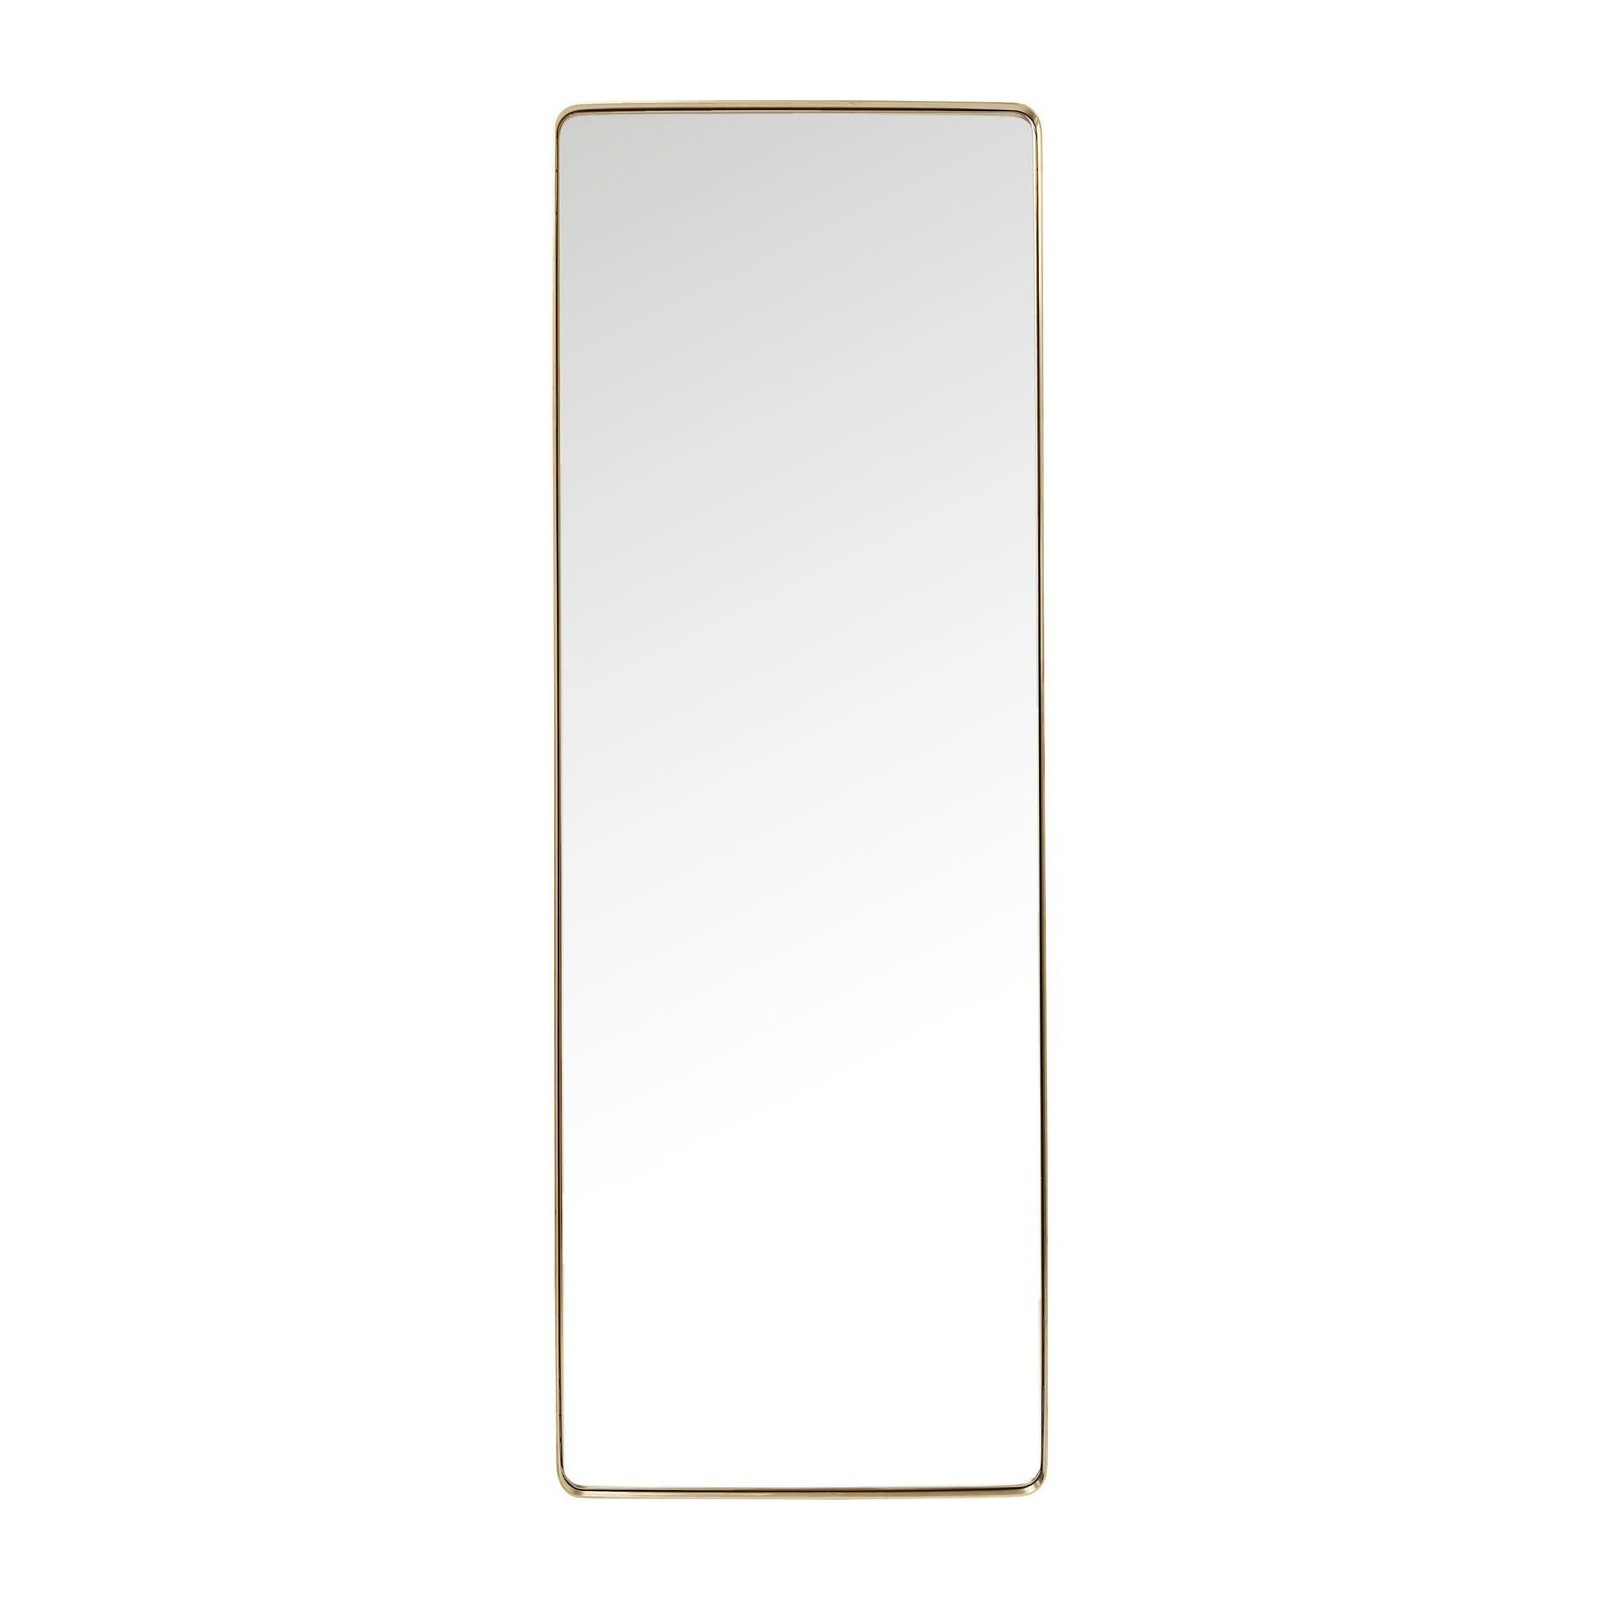 Miroir curve rectangulaire laiton 200x70cm kare design for Miroir rectangulaire